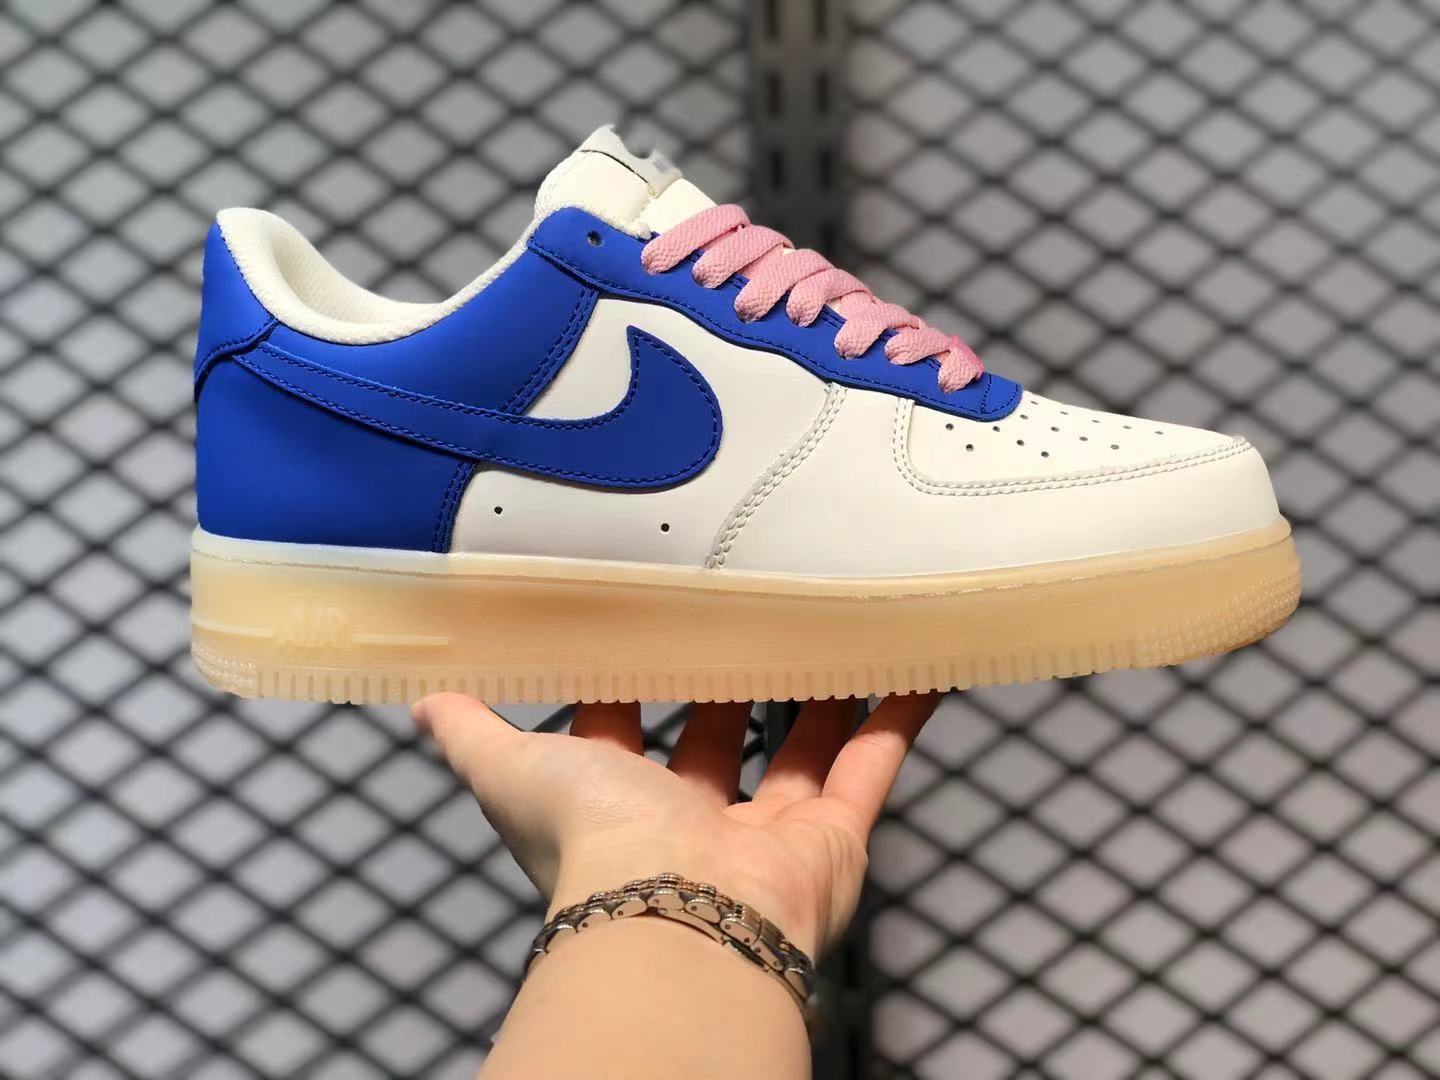 Nike Air Force 1 Low White Blue Pink On Sale